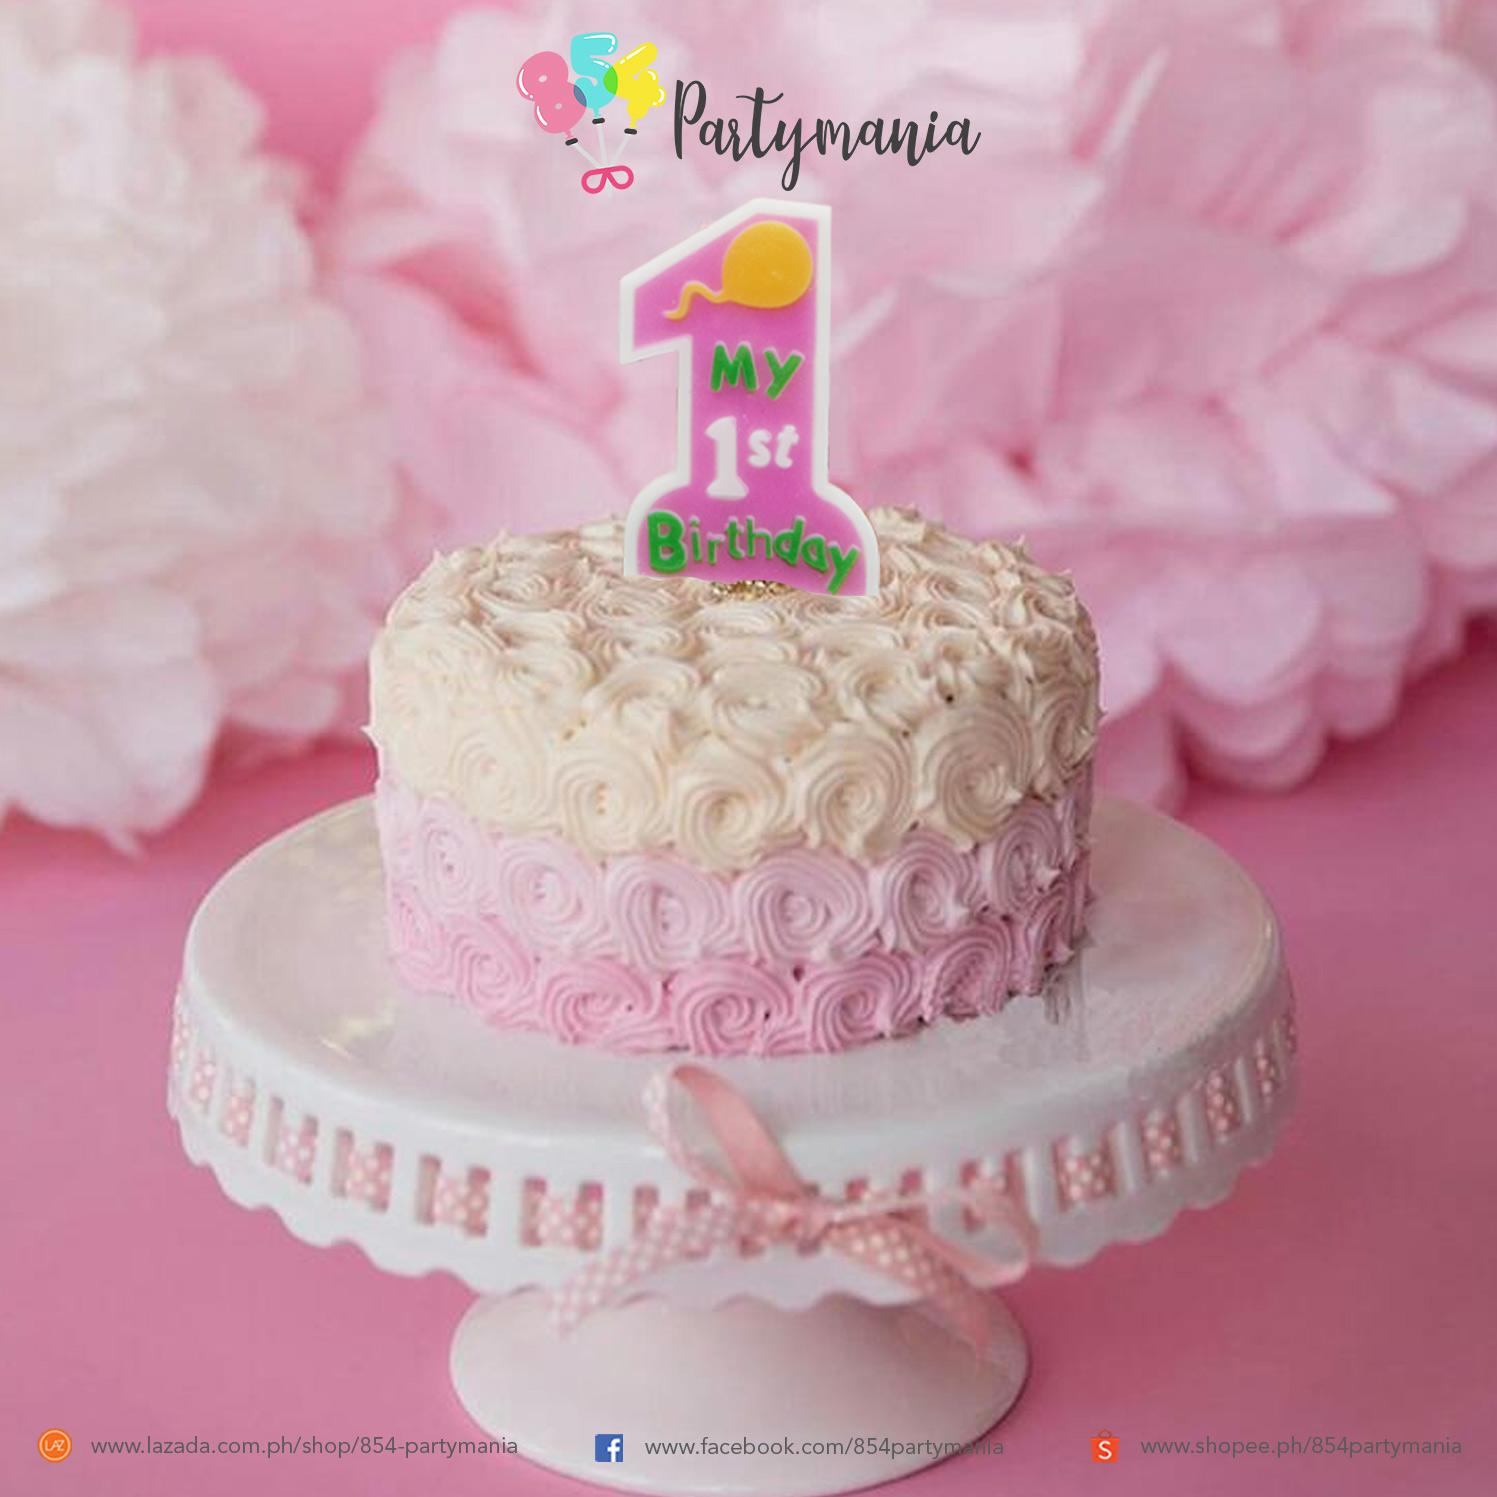 1st Birthday Candle Cake Topper Decoration